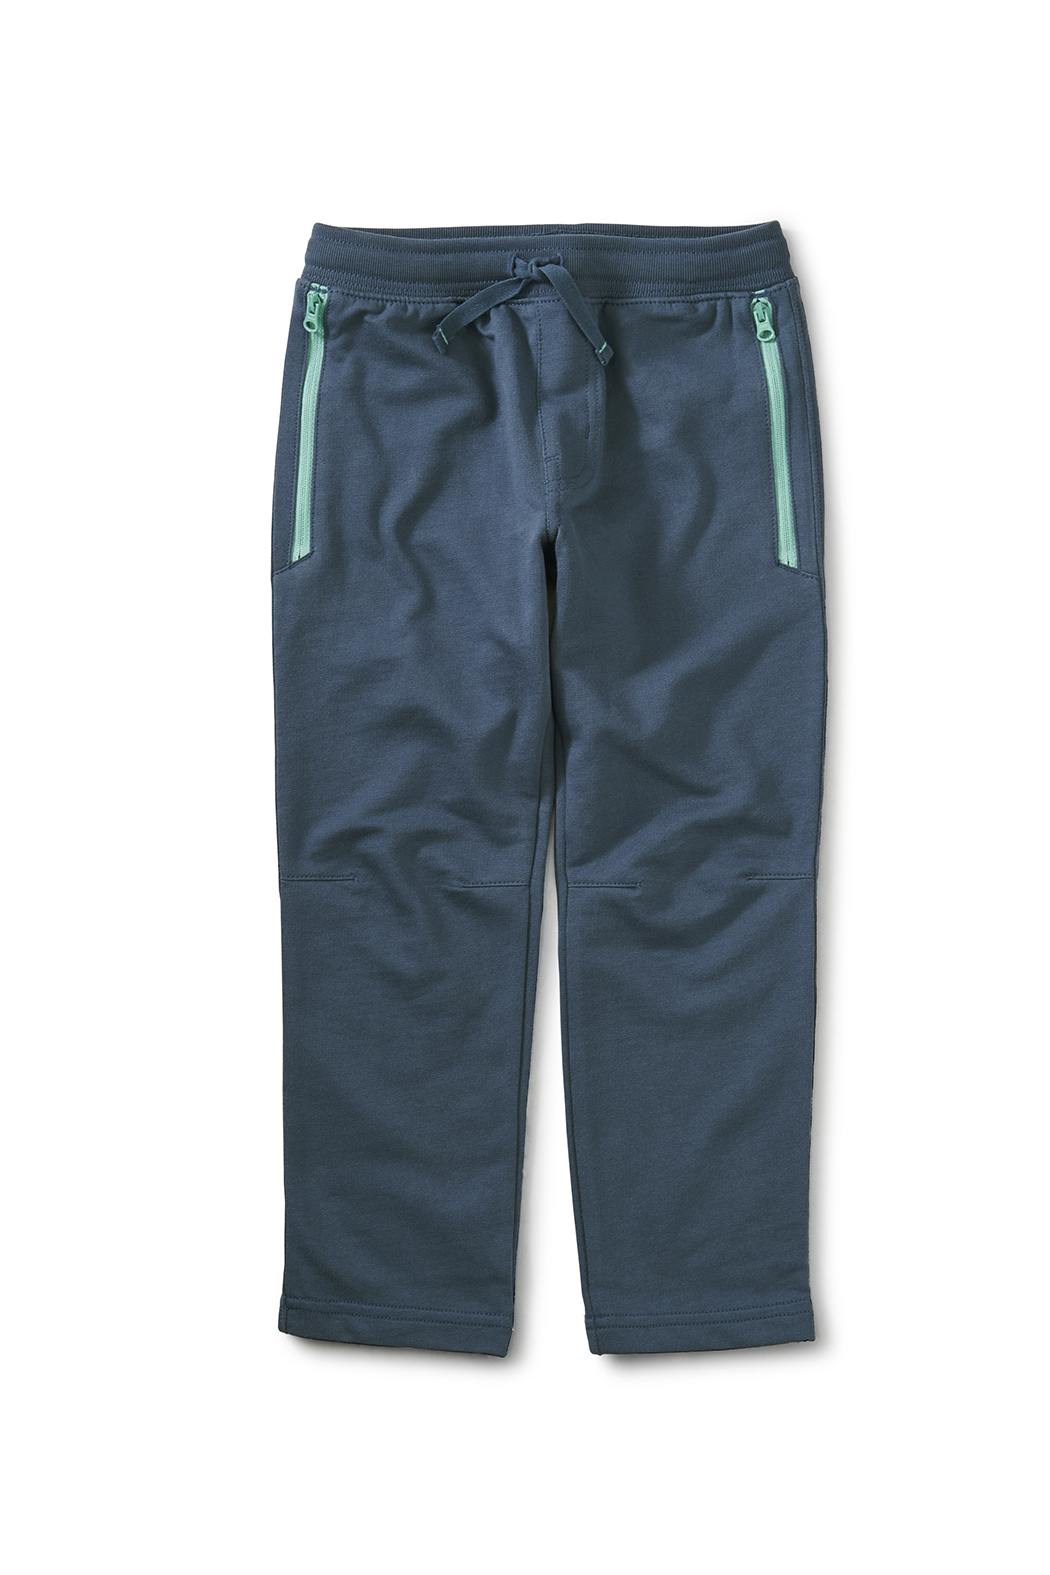 Tea Collection Zip Pocket Joggers - Copen Blue - Front Cropped Image